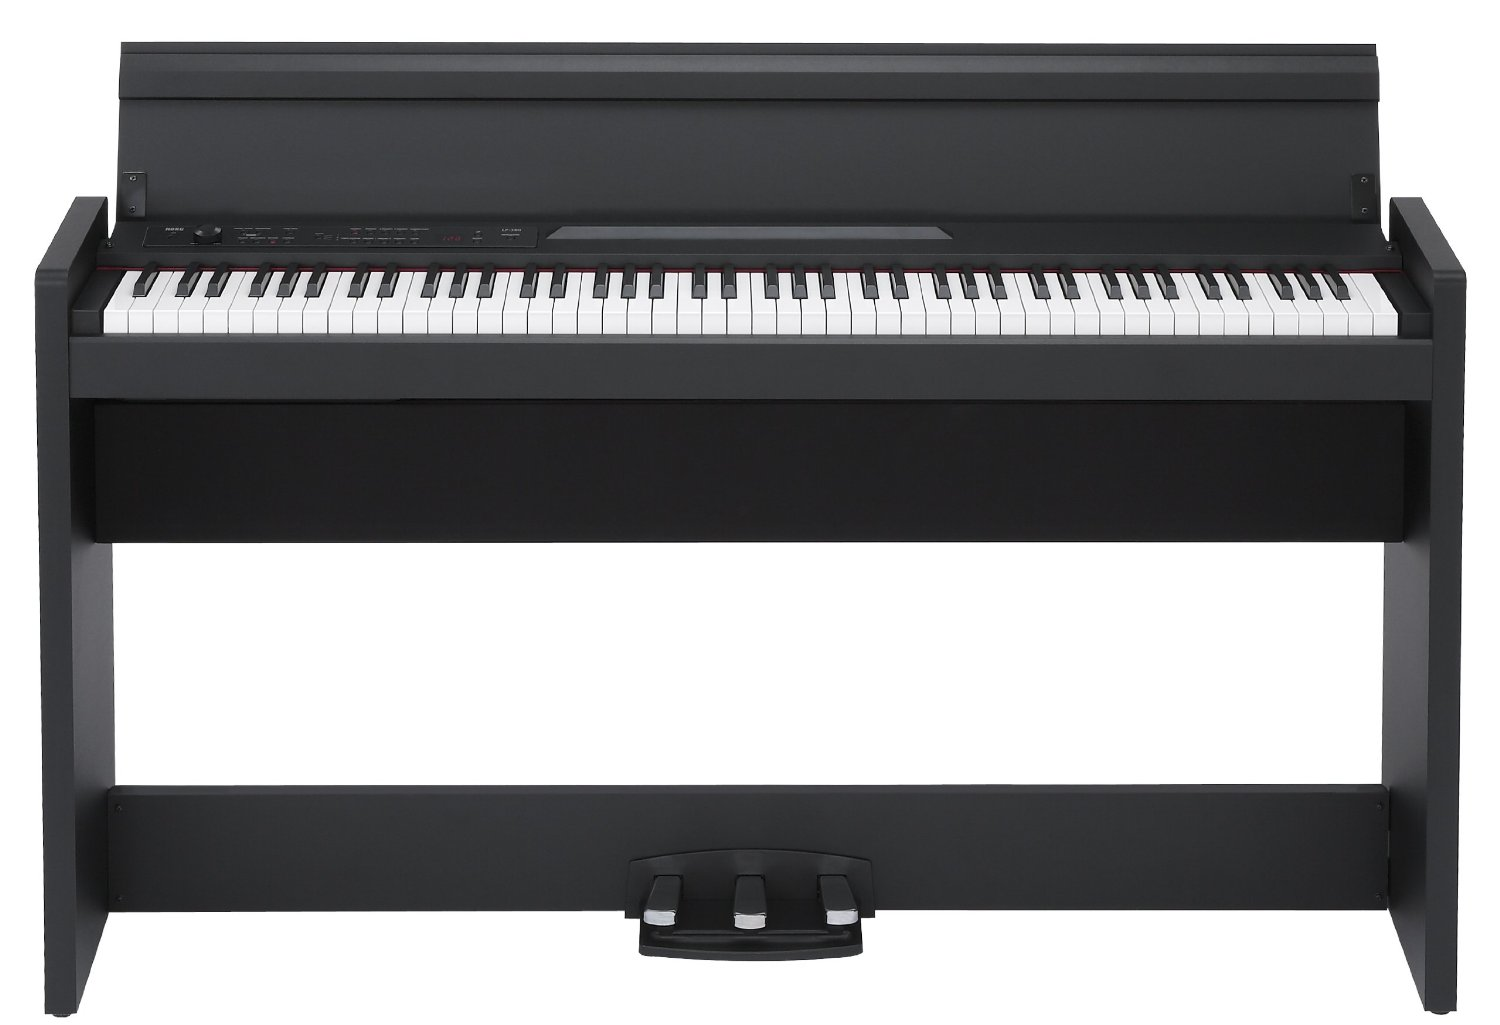 Korg LP-380 Piano Review